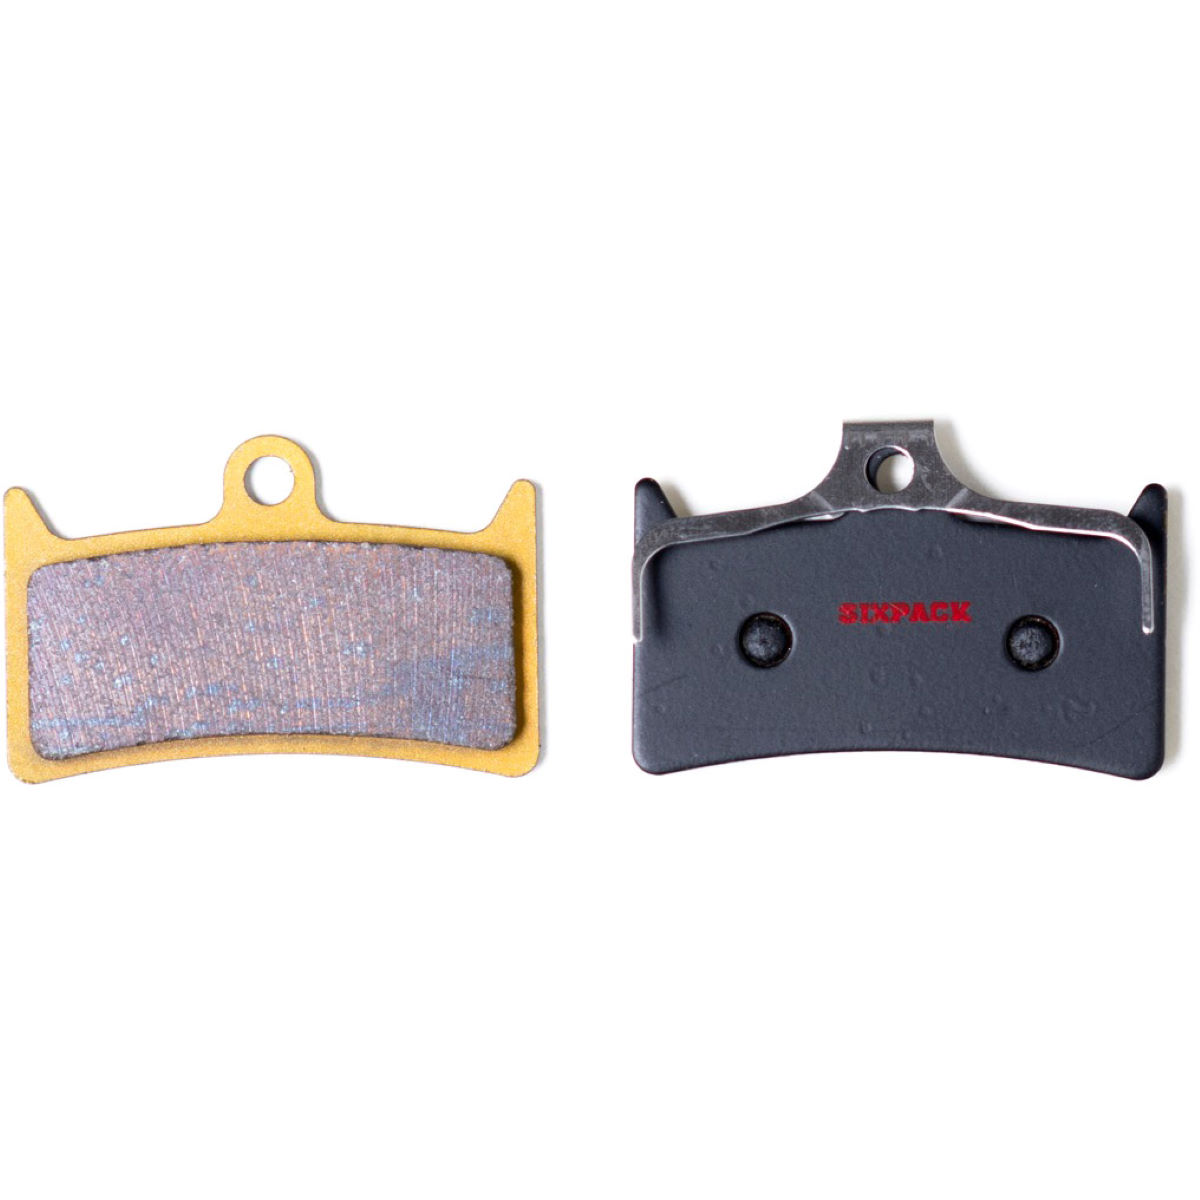 Sixpack Racing Hope Sintered Brake Pad - Pastillas para frenos de disco